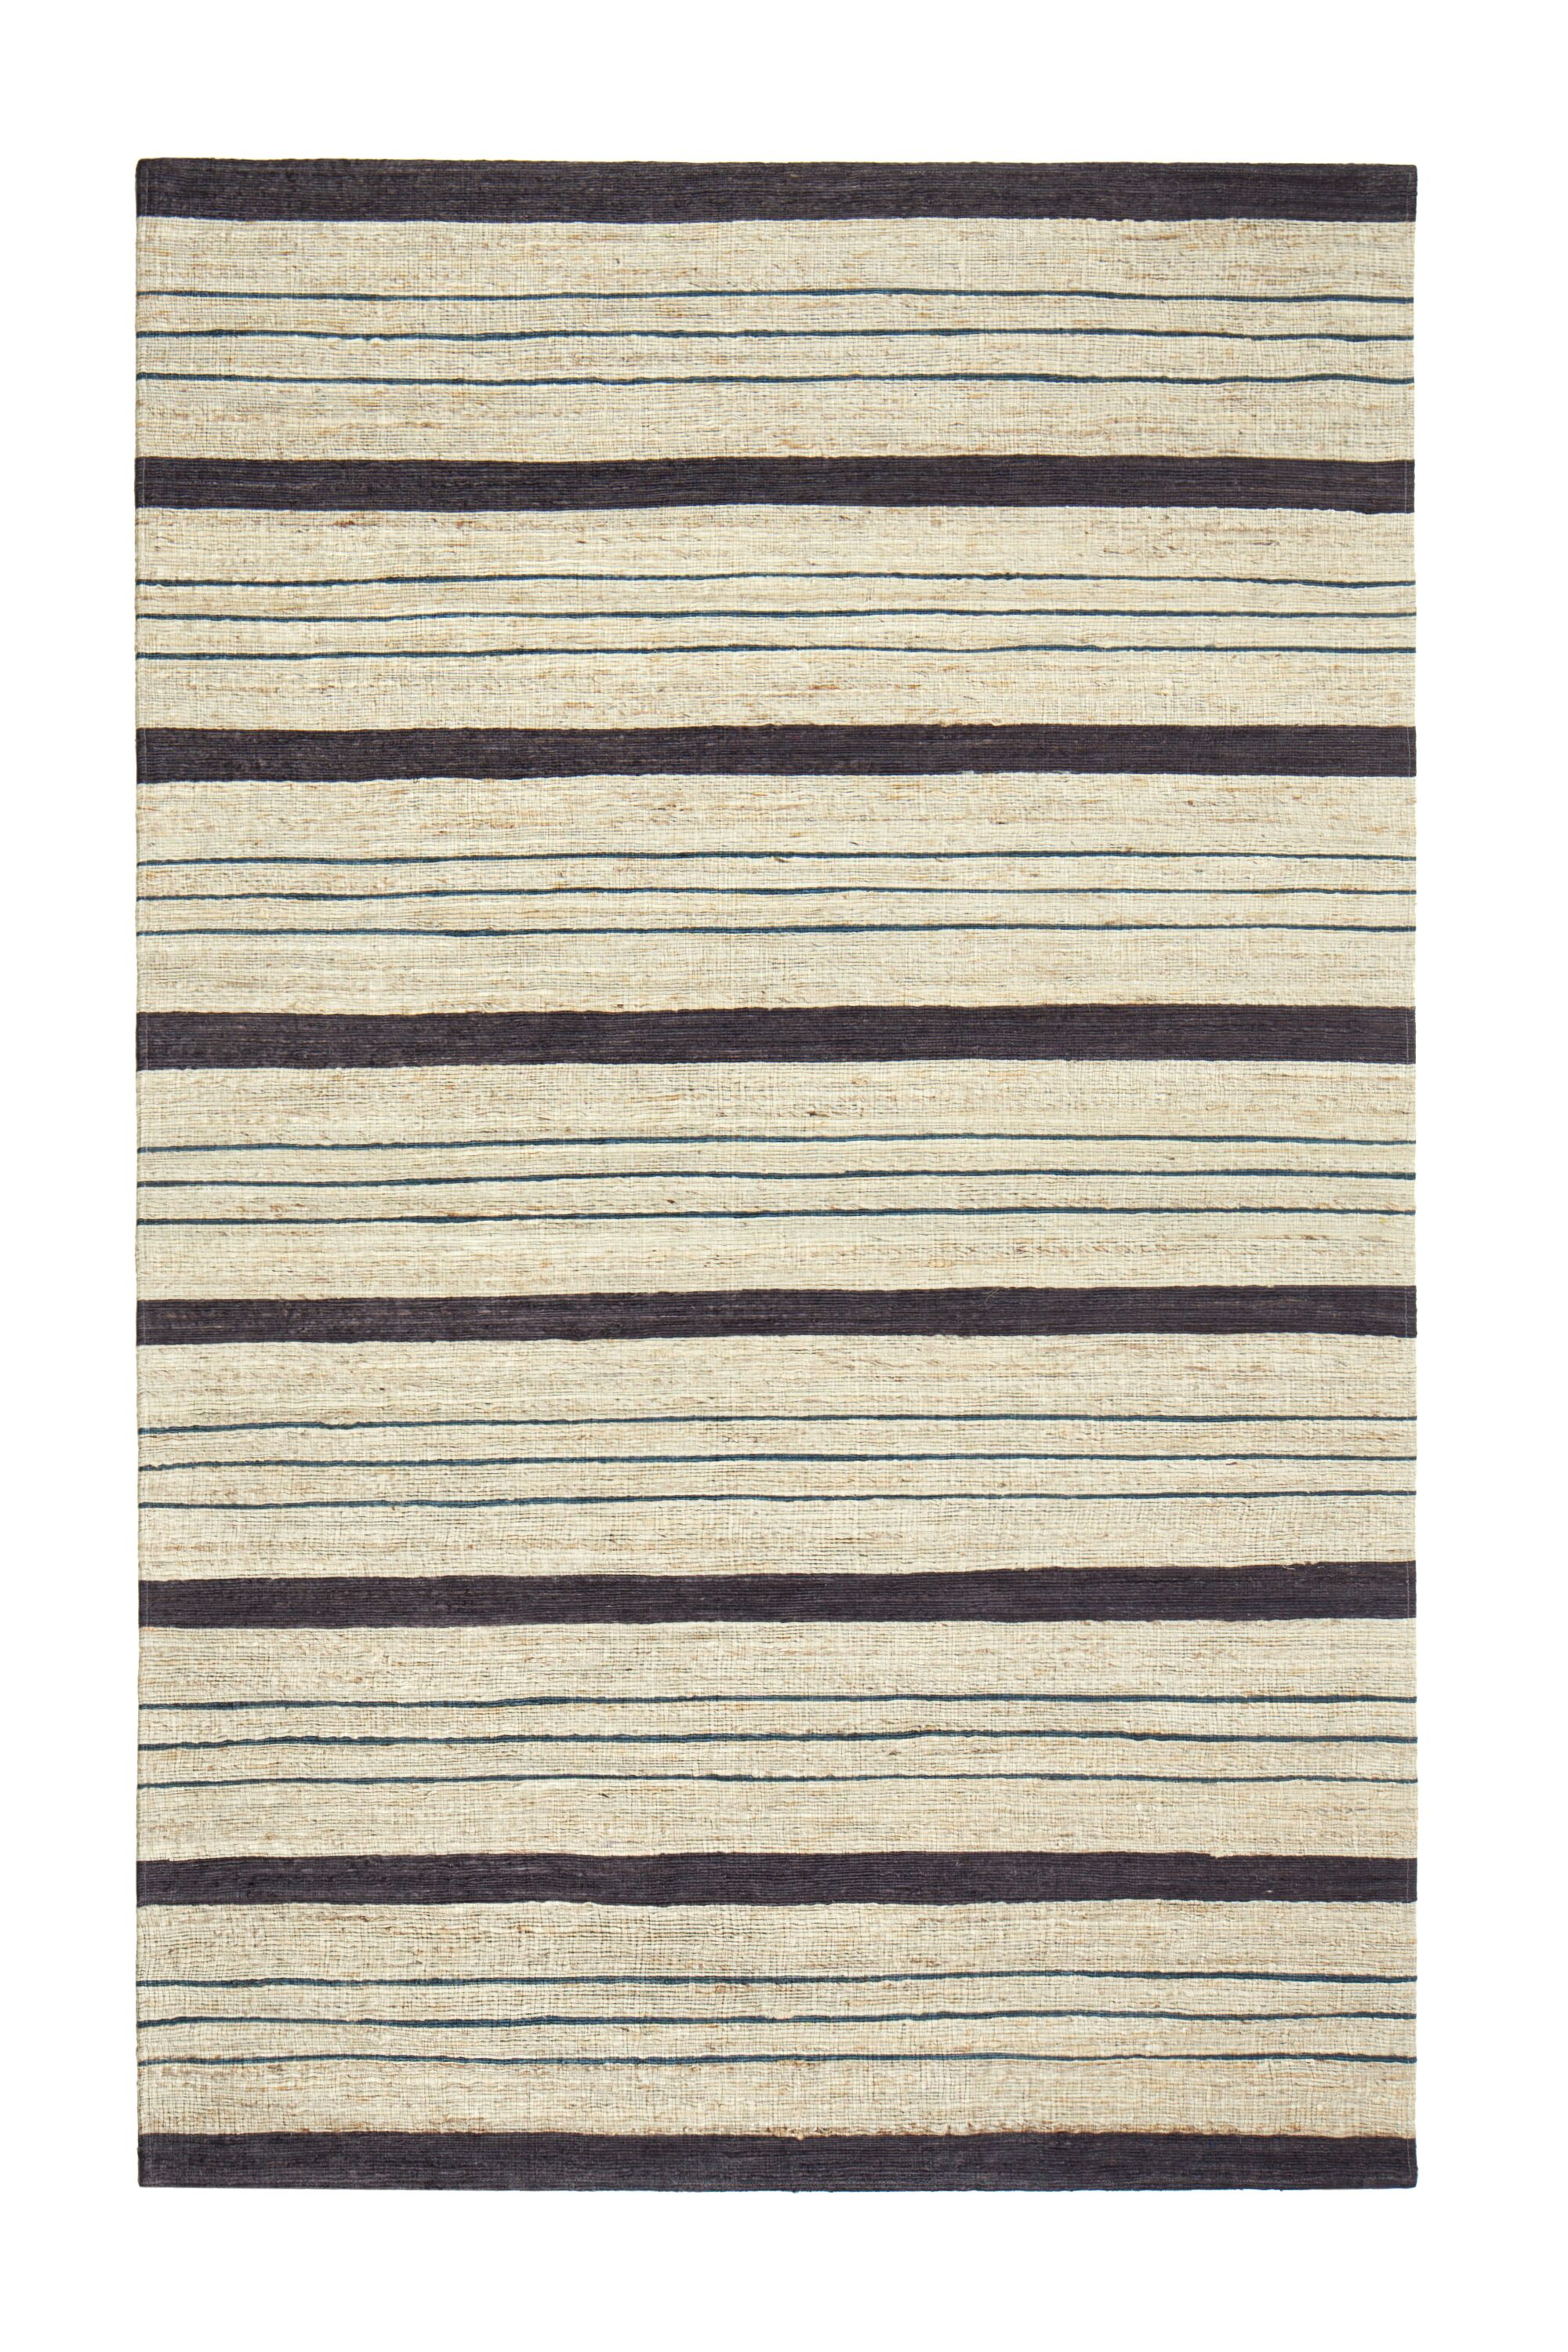 Griswold Hand-Woven Beige/Black Area Rug Rug Size: 9' x 12'